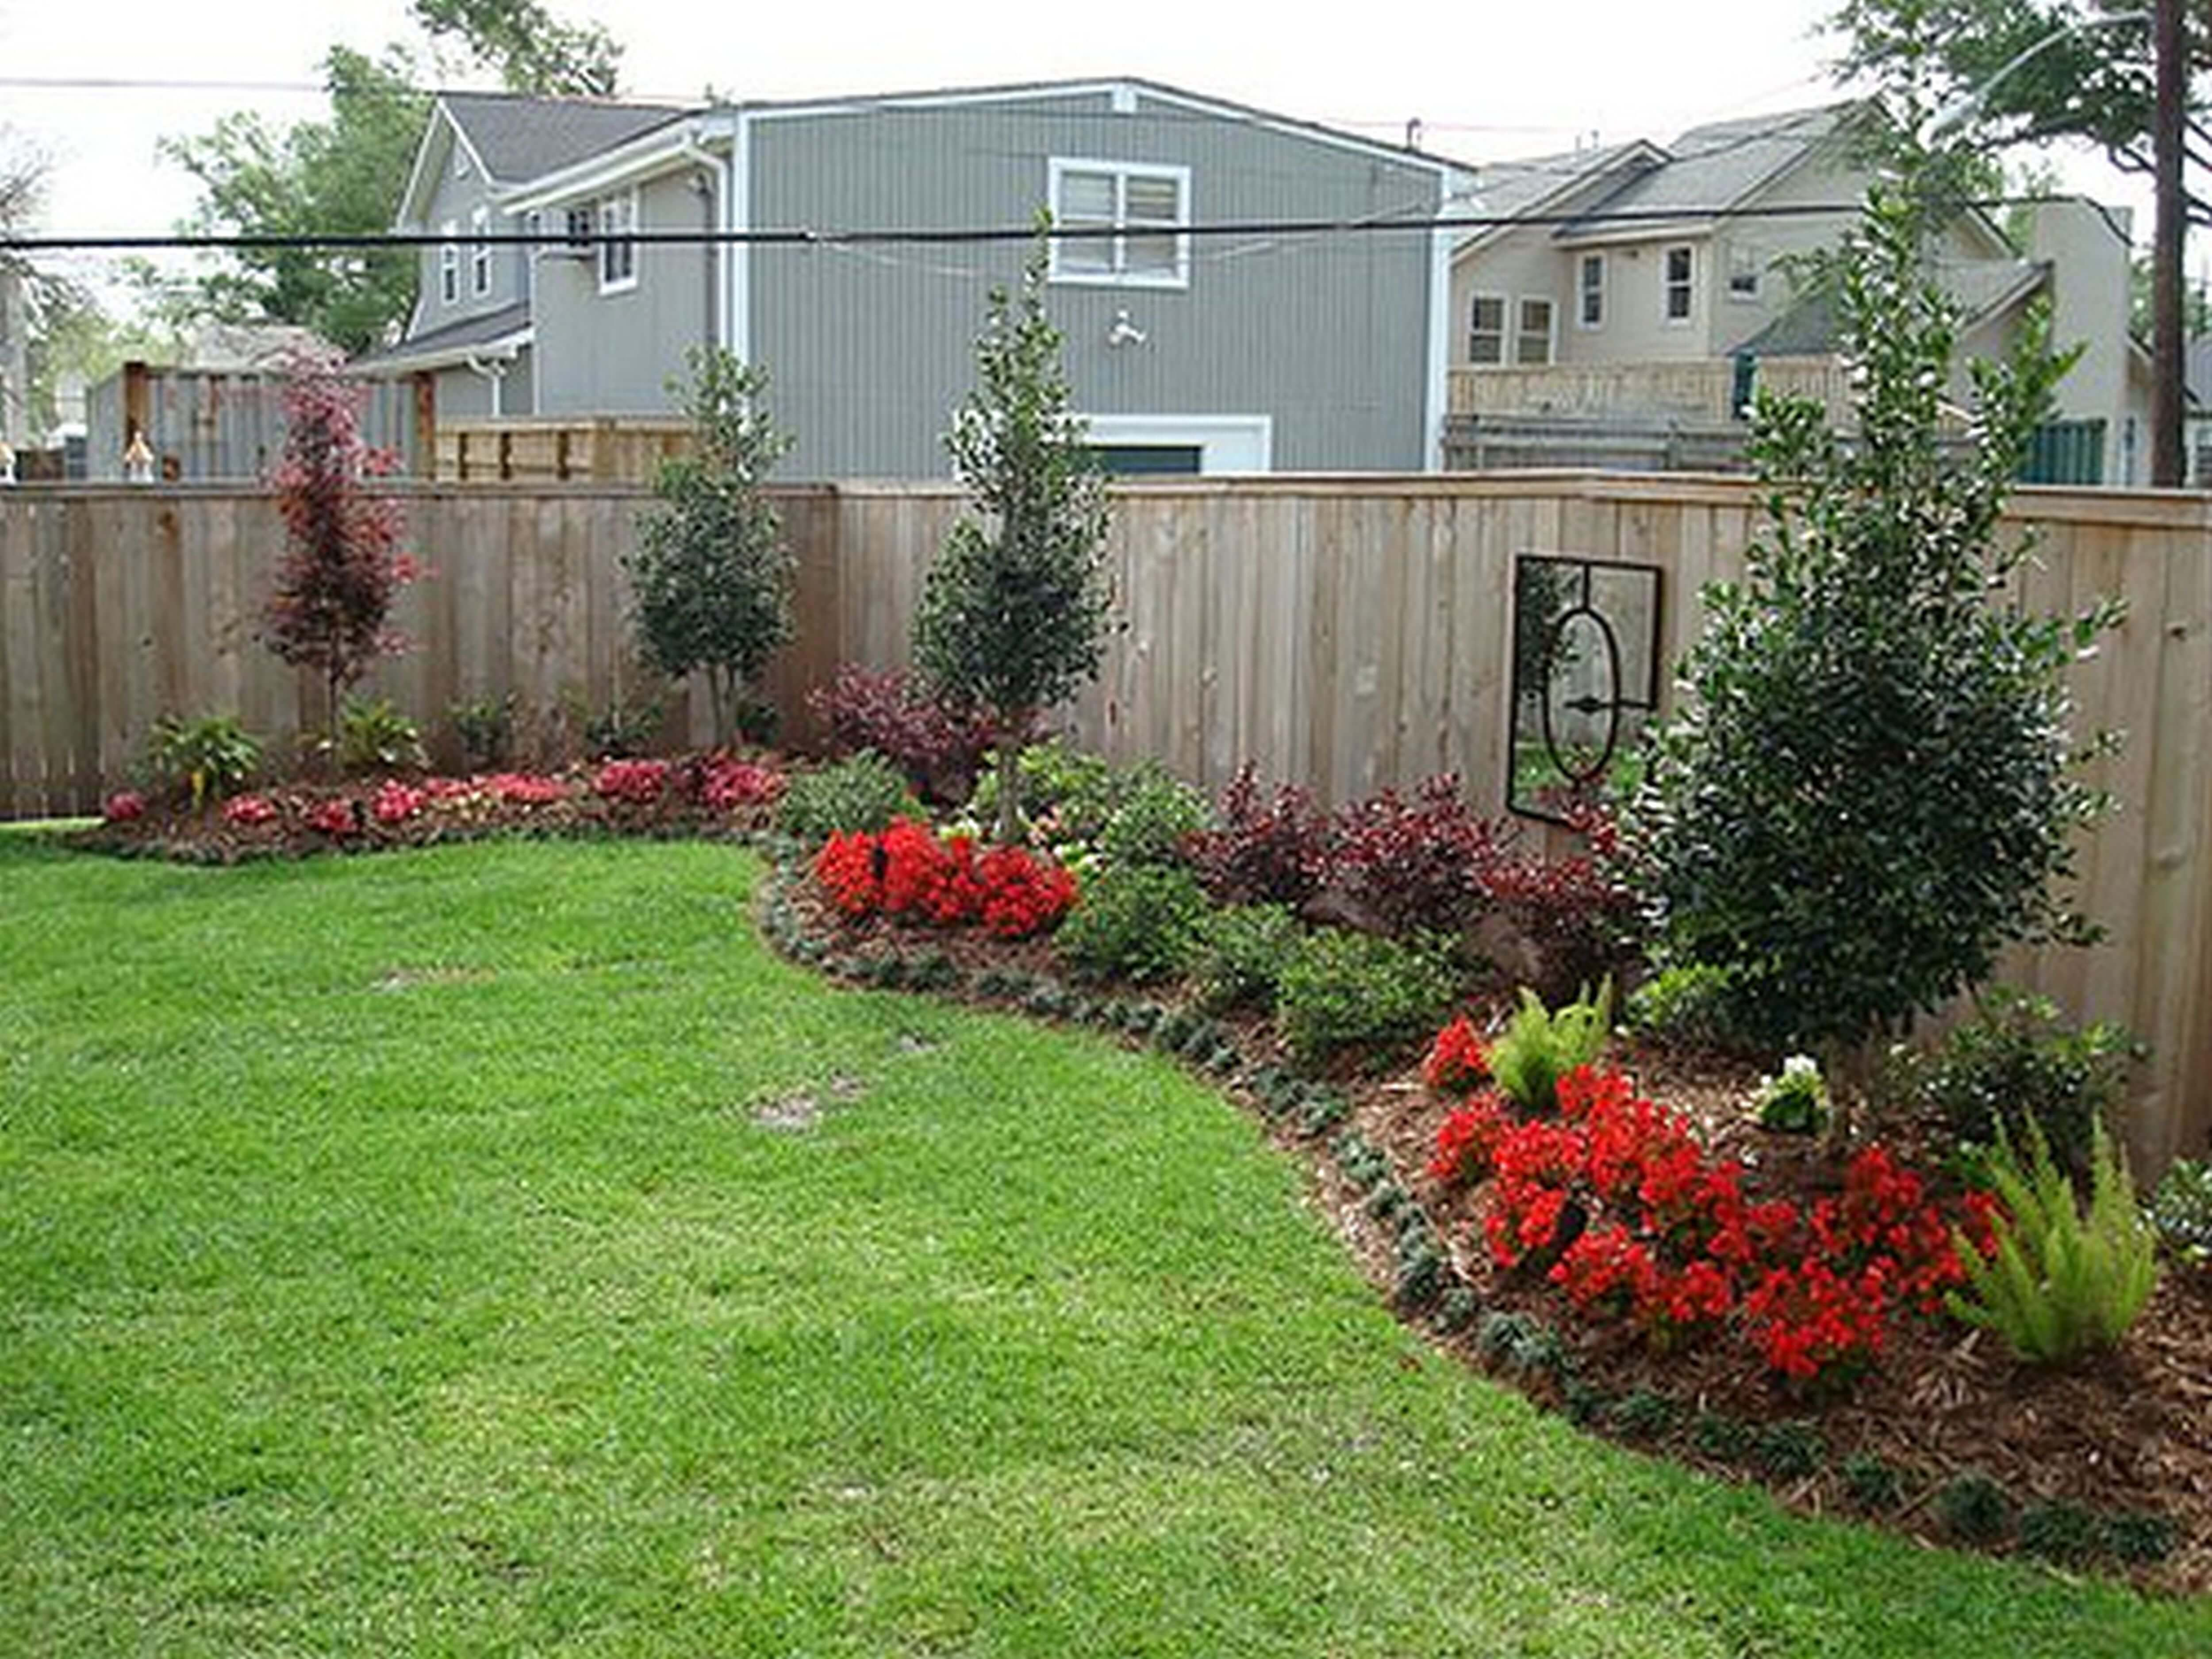 Landscape ideas What landscaping ideas are for the backyard is suitable for my type of house ADZQGUW